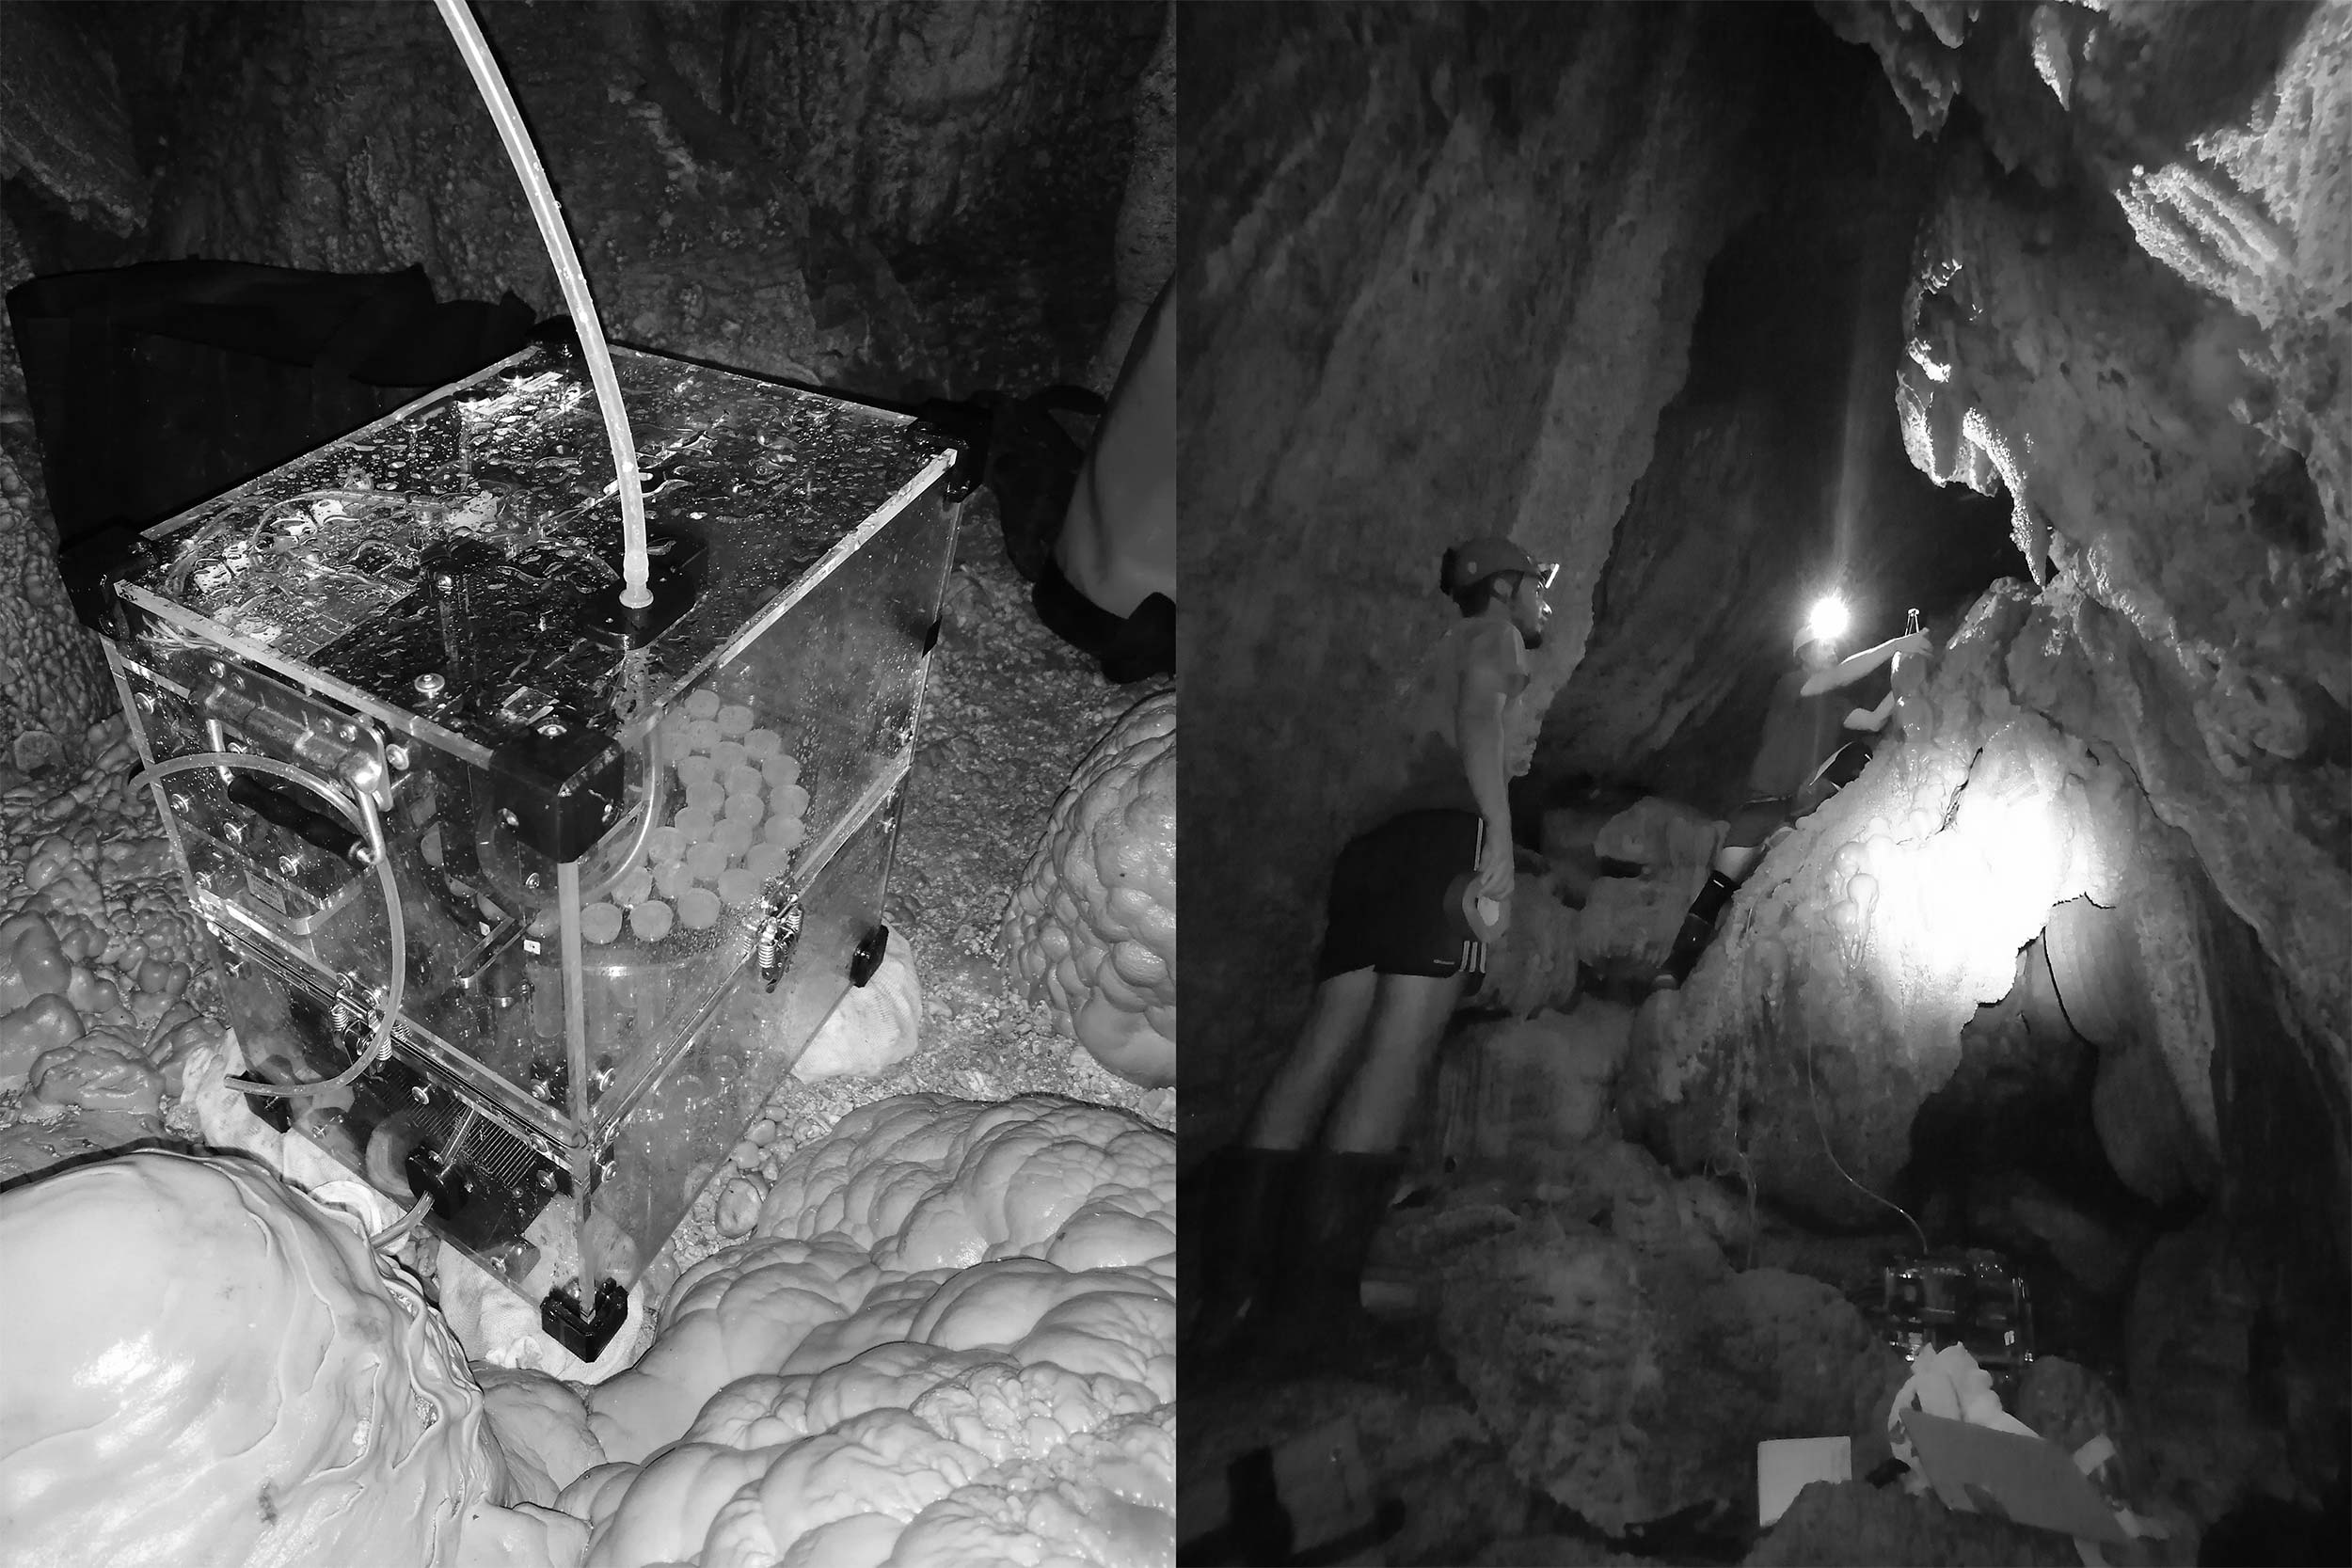 Syp autosampler device installed by in cave, field scientists in process of installation.